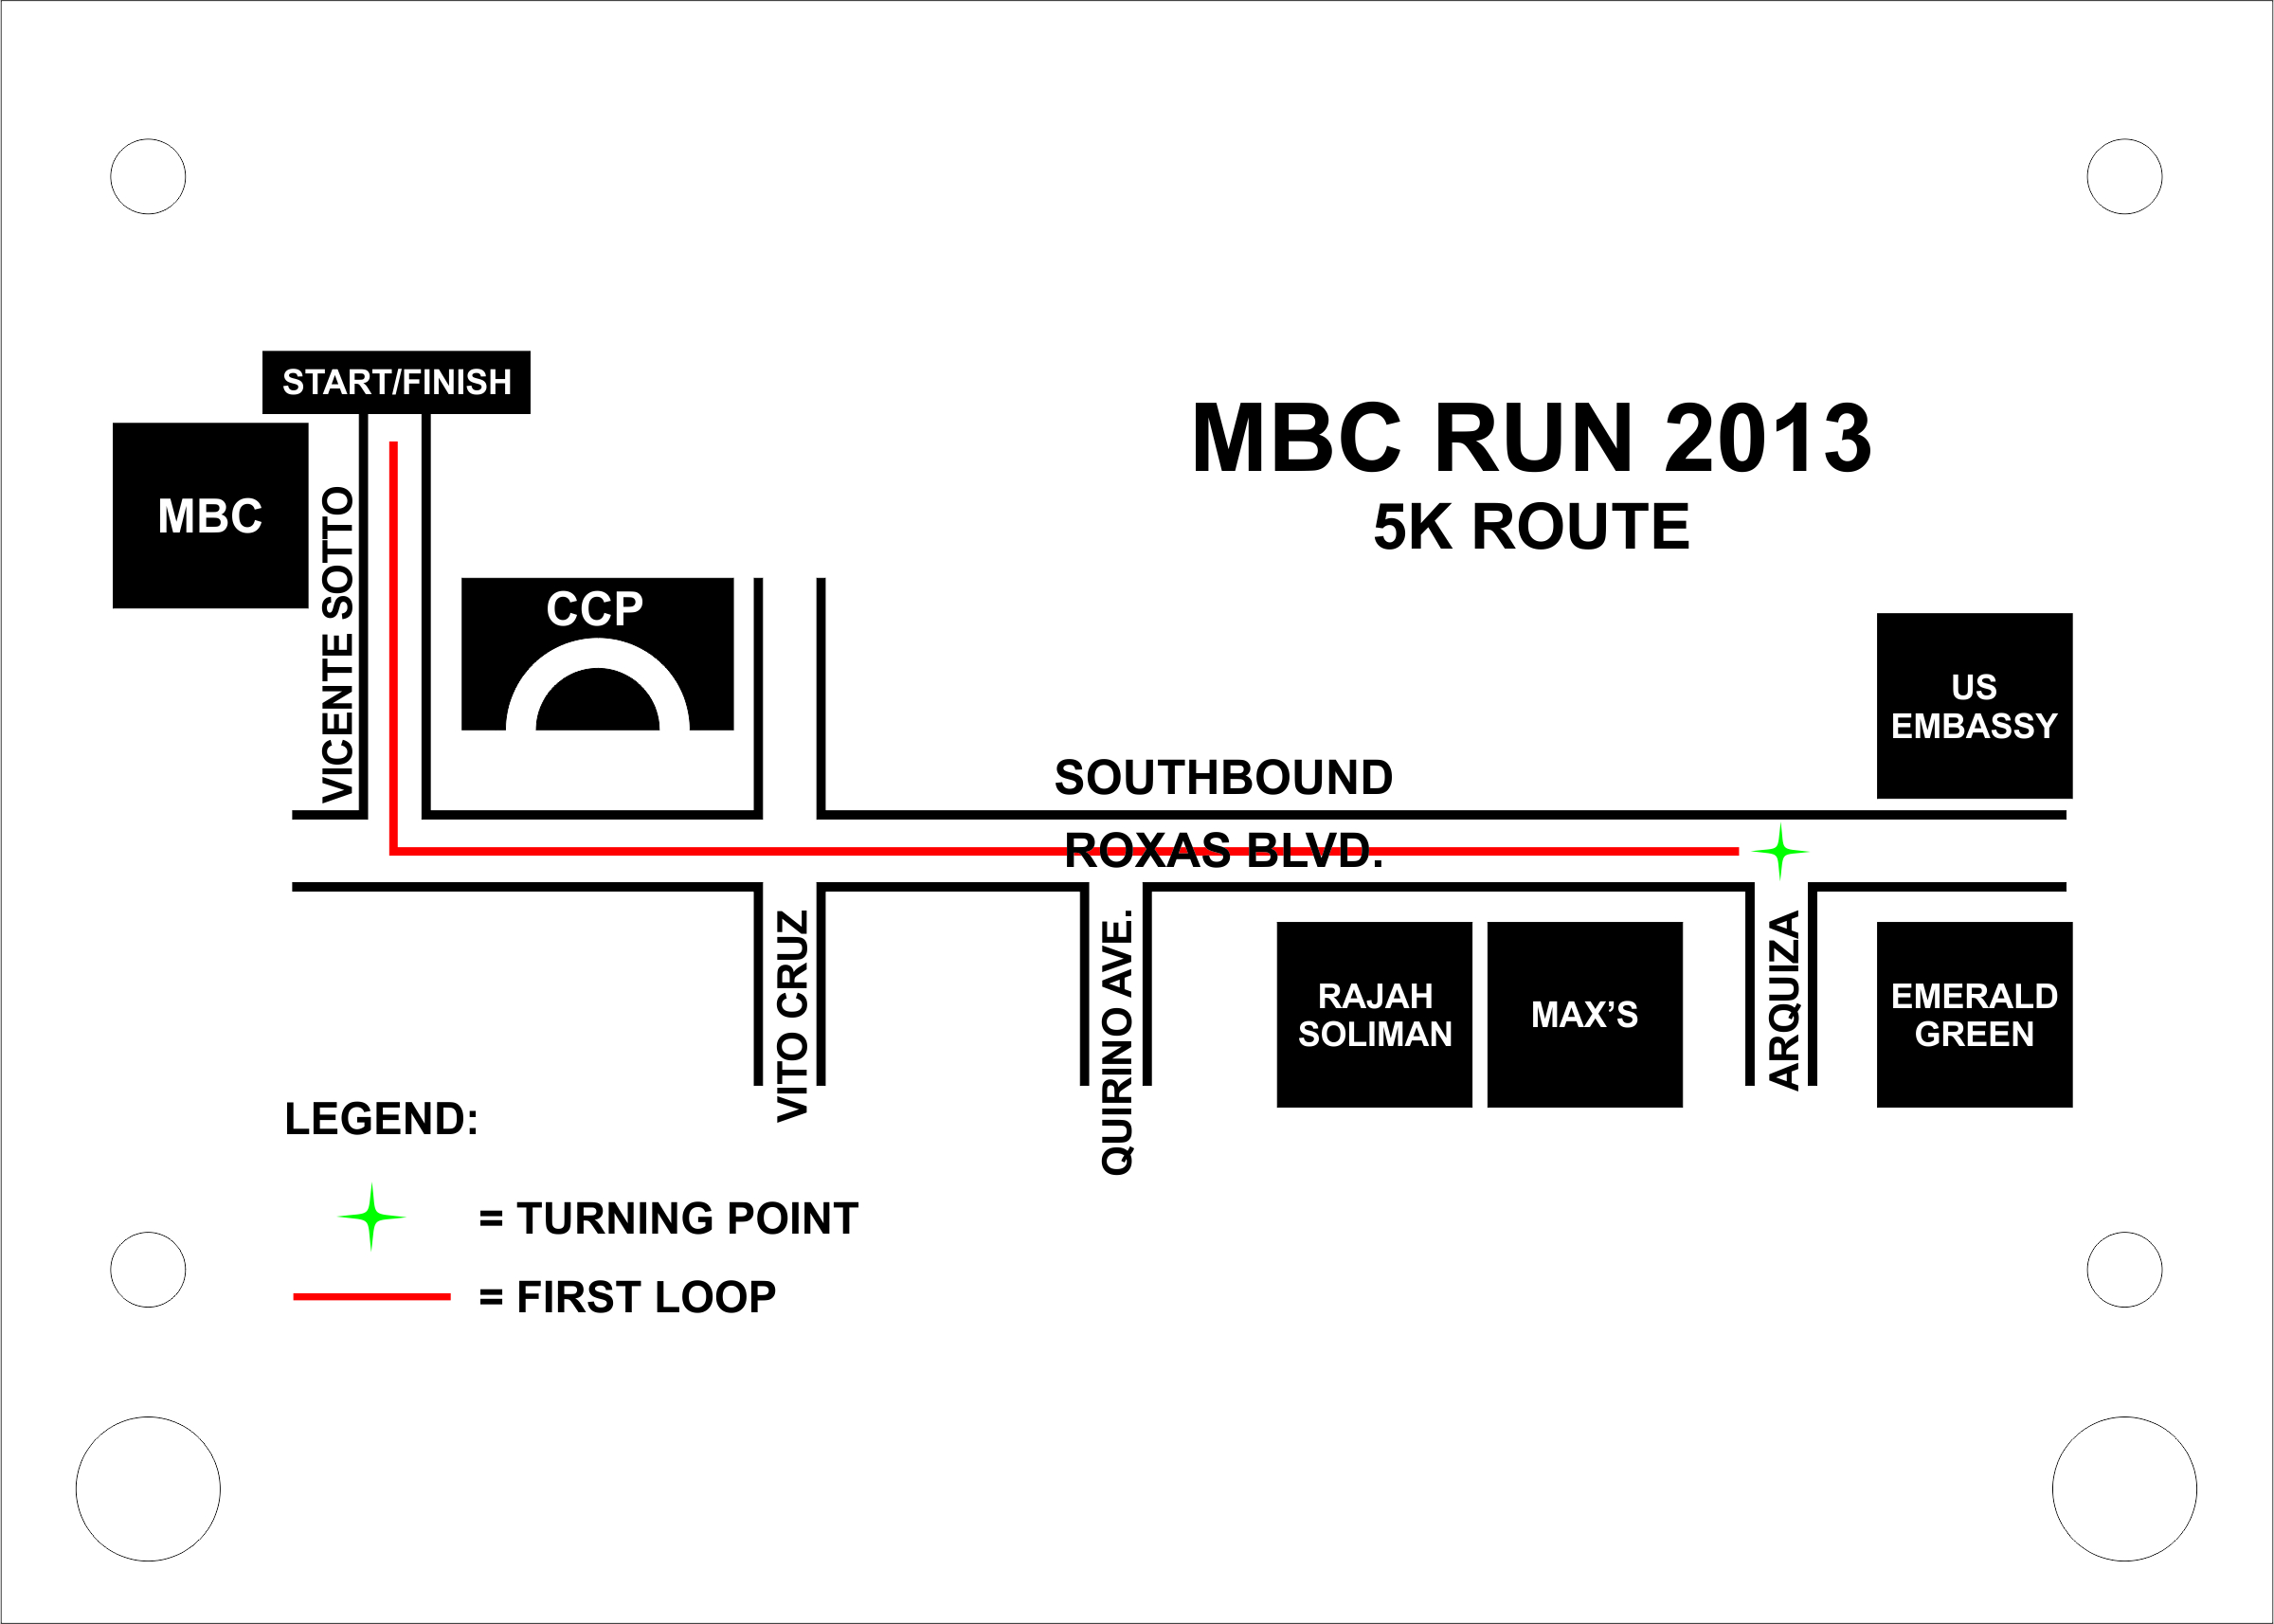 manila-bay-clean-up-run-2013-route-map-5k